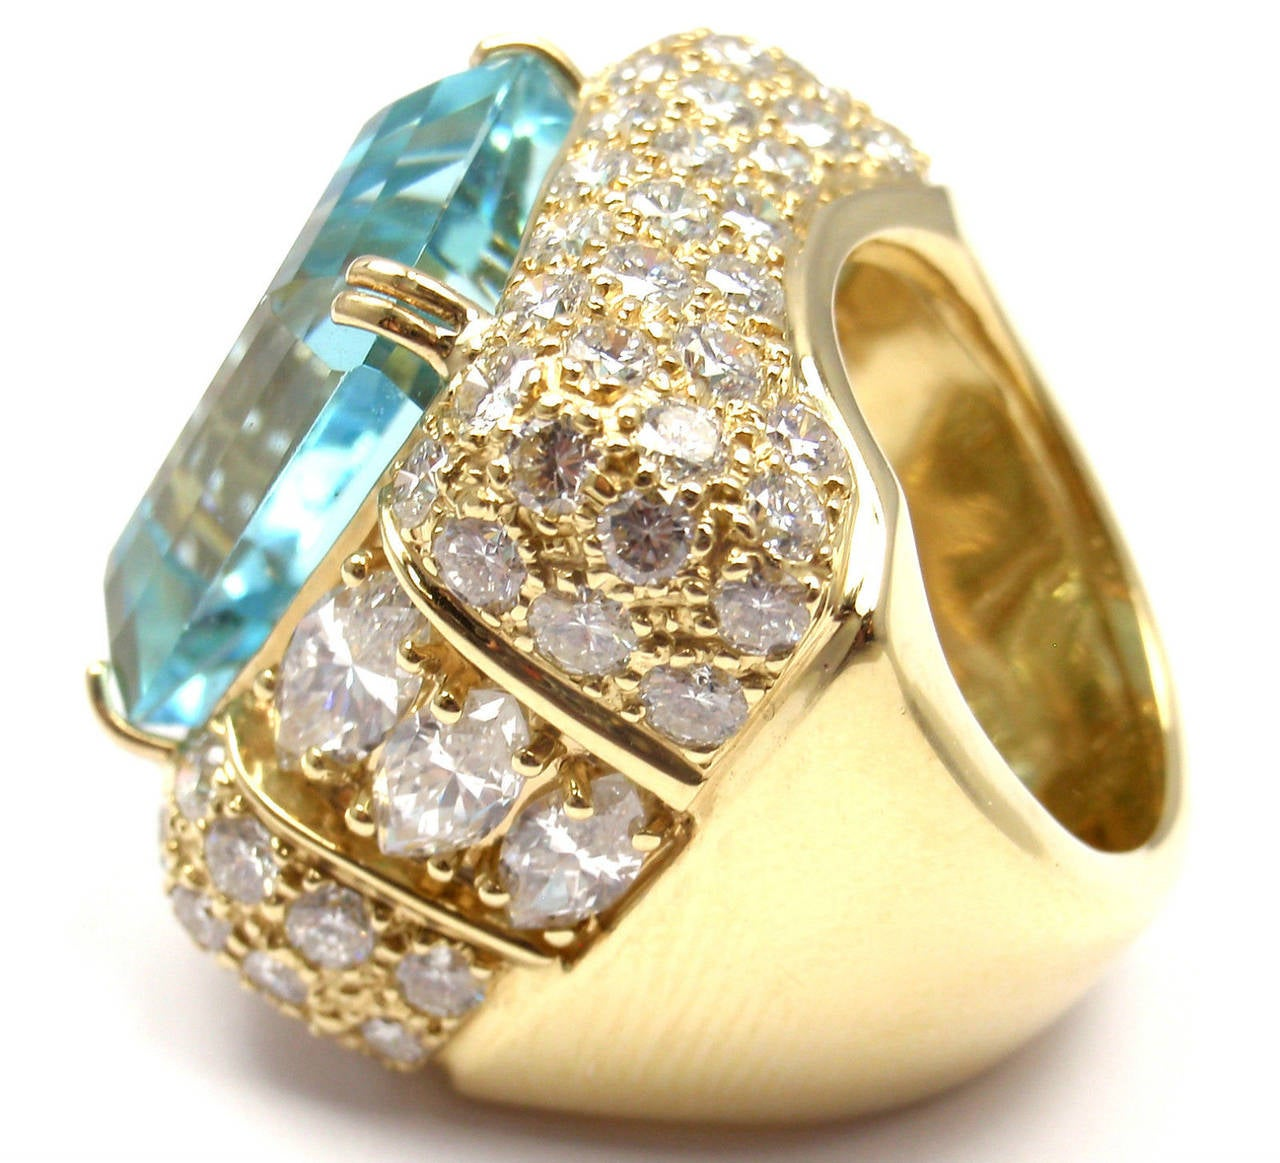 Round Cut Hammerman Brothers Large 23.70 Carat Aquamarine Diamond Gold Ring For Sale